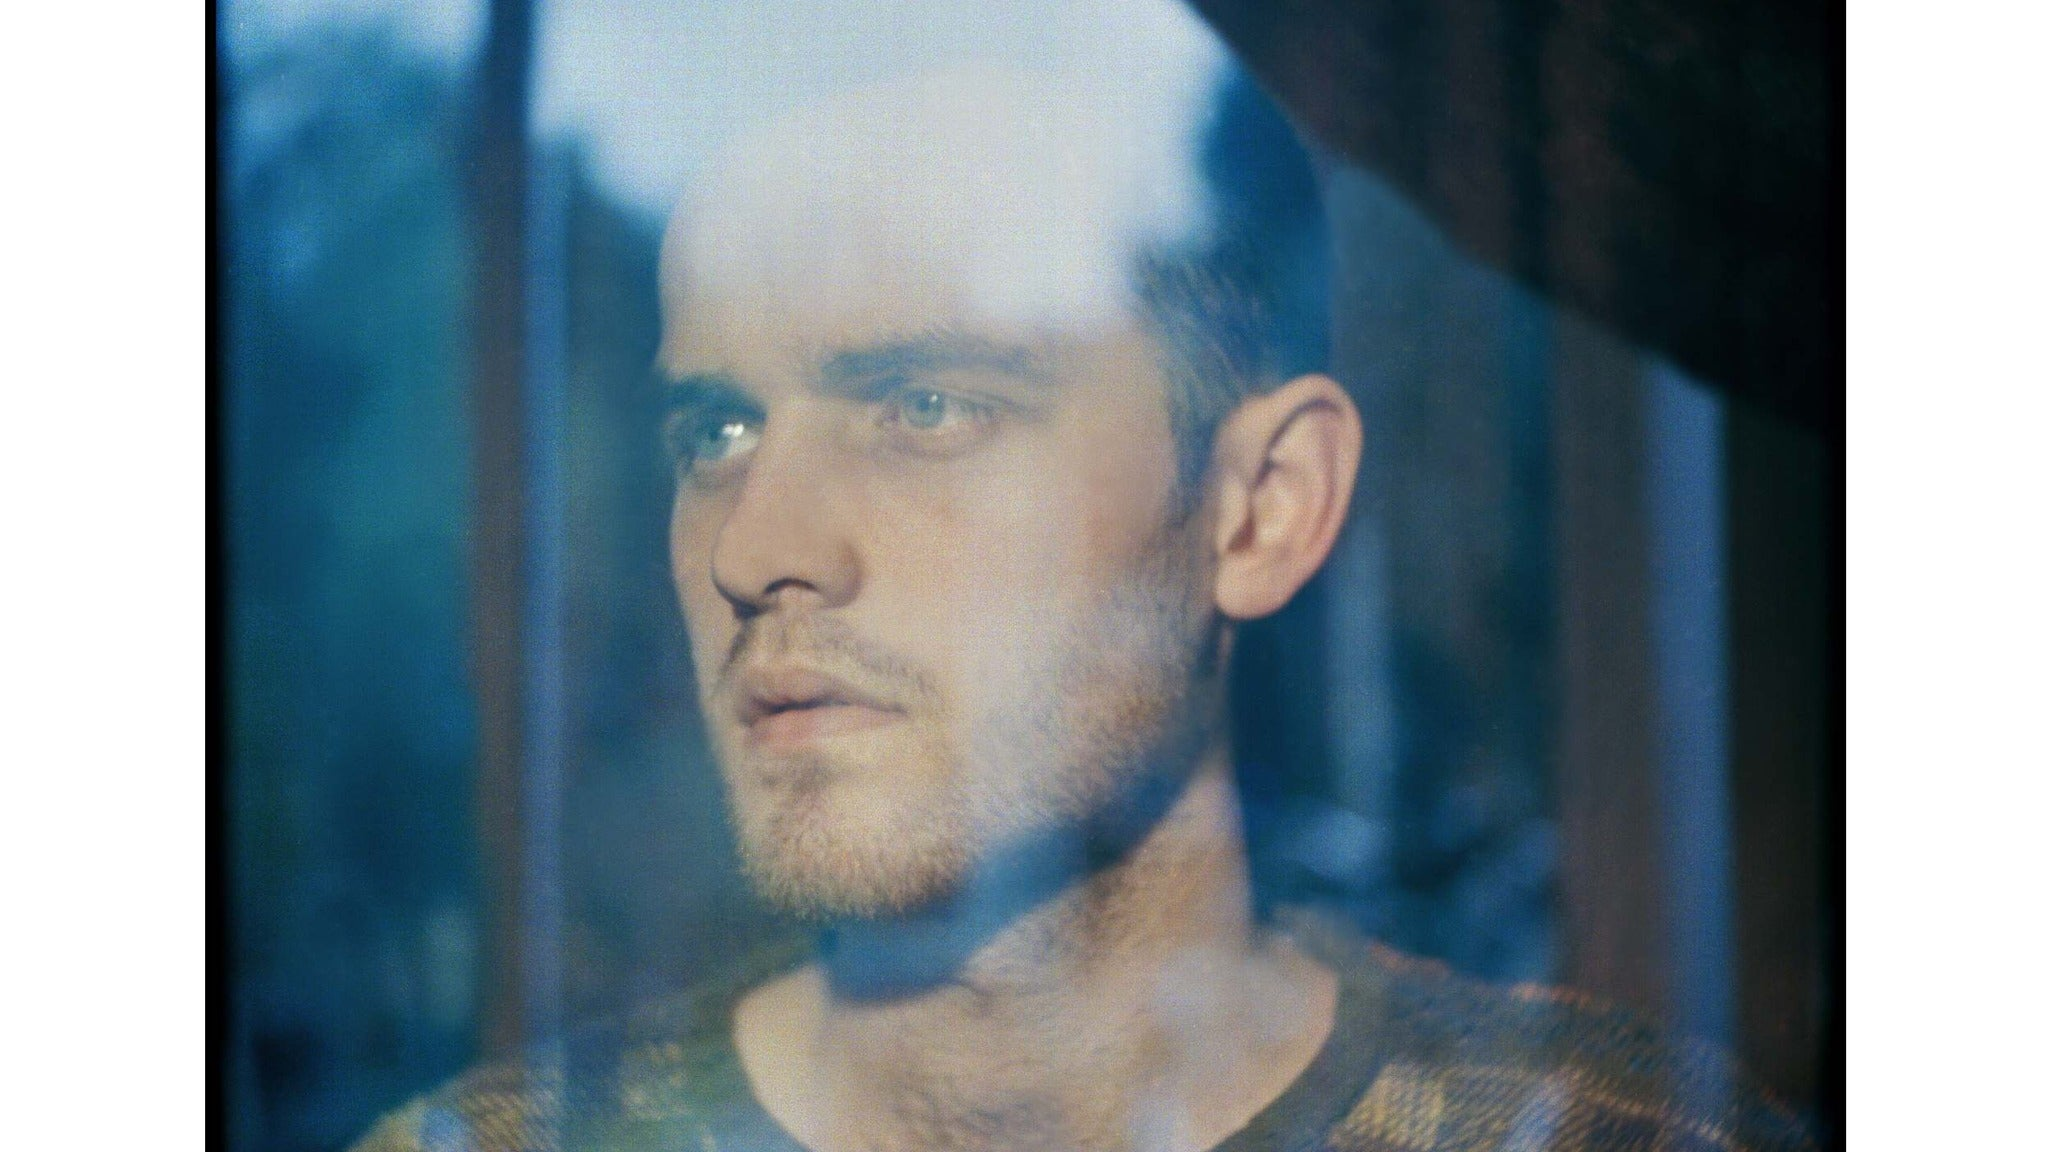 Jordan Rakei at The Fillmore - San Francisco, CA 94115